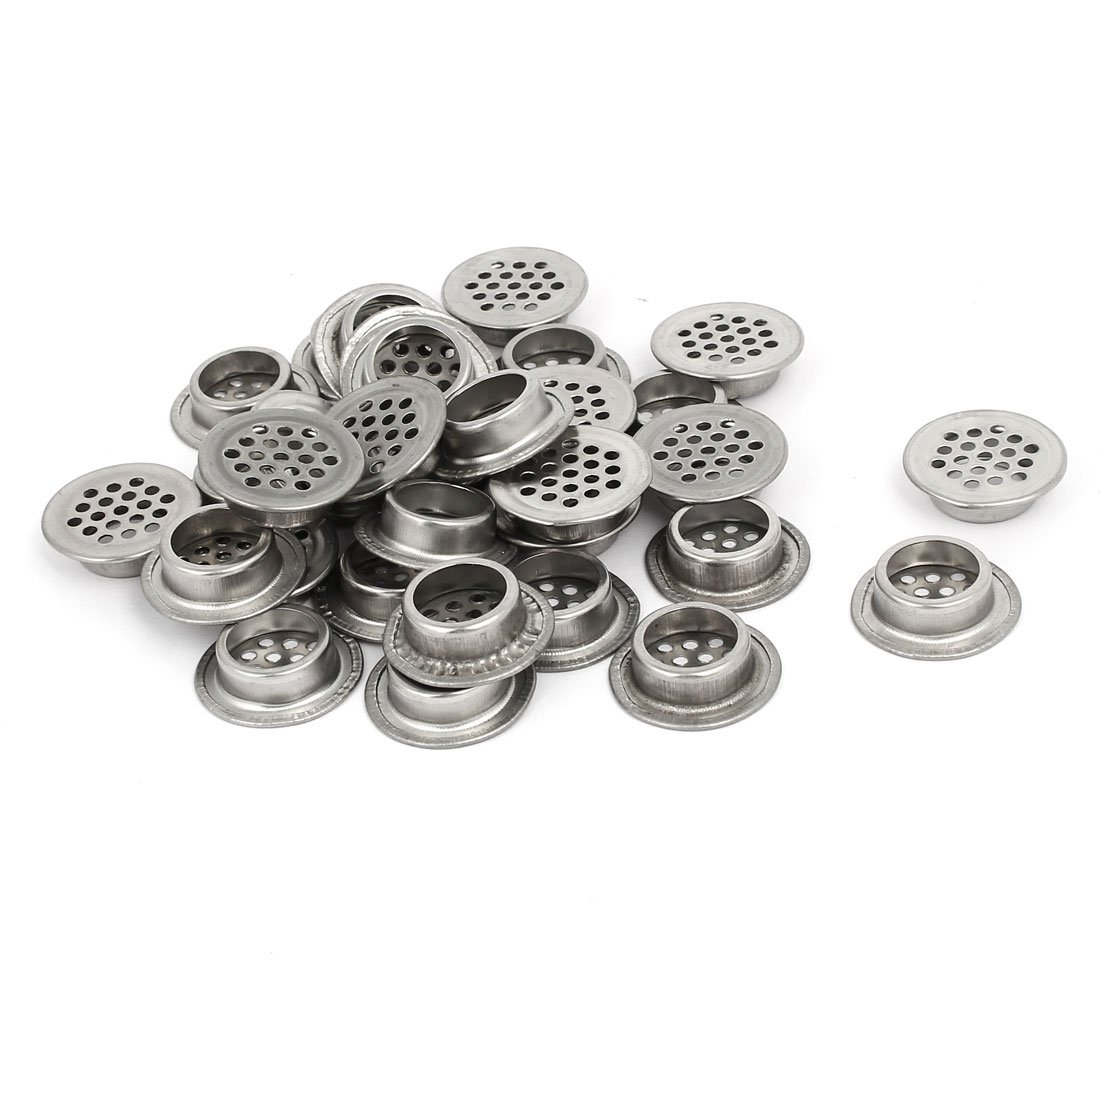 uxcell 19mm Bottom Dia Stainless Steel Round Shaped Mesh Hole Air Vent Louver 30pcs